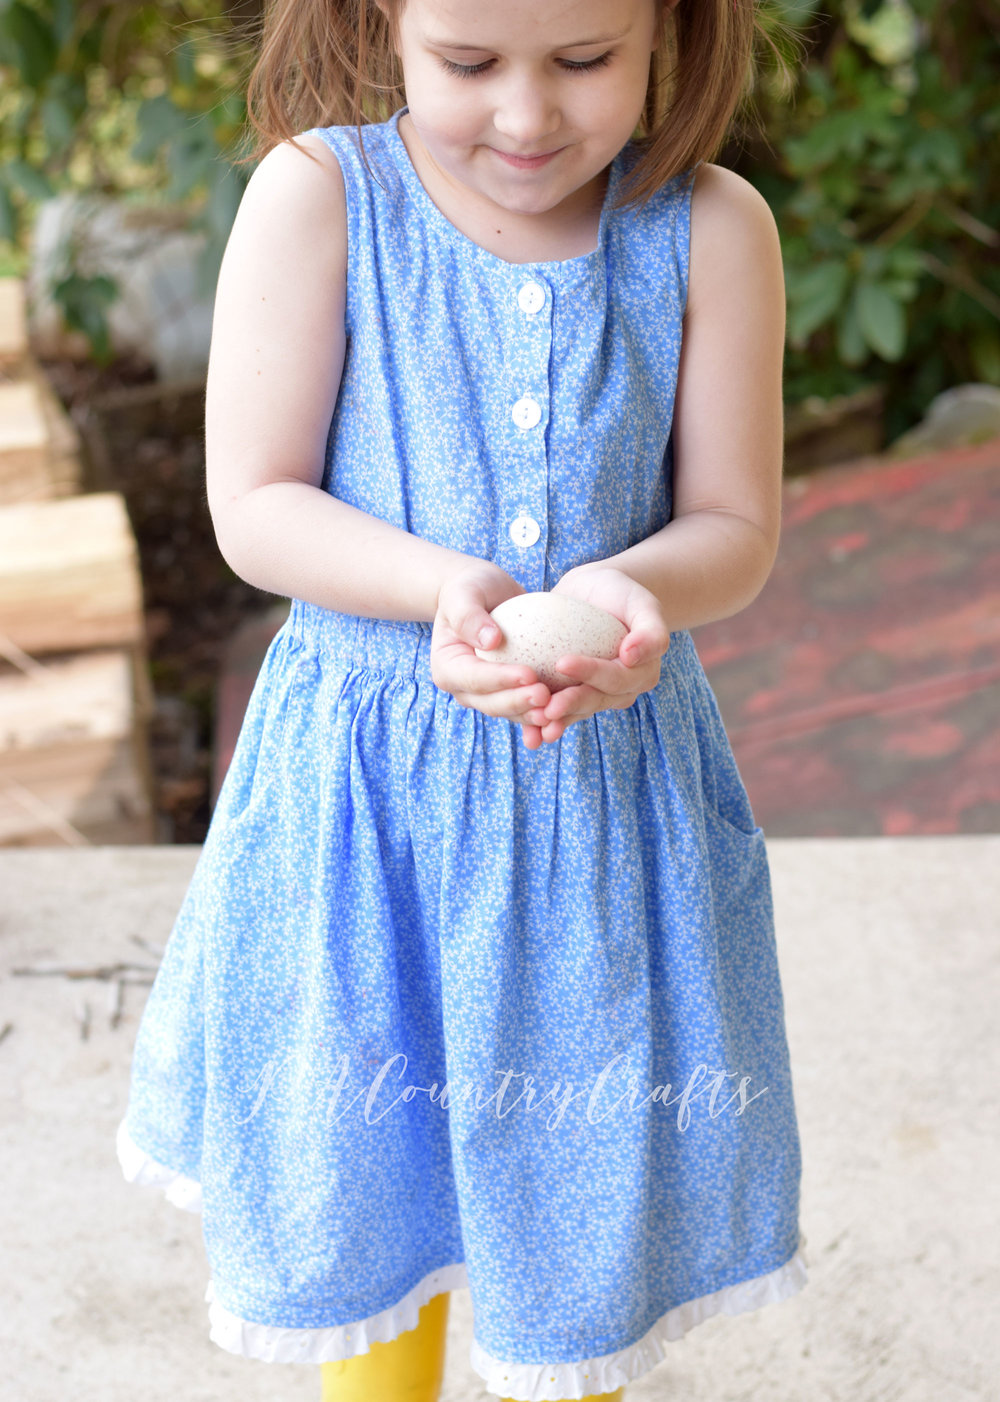 seed dress pattern made with a vintage, farm girl style